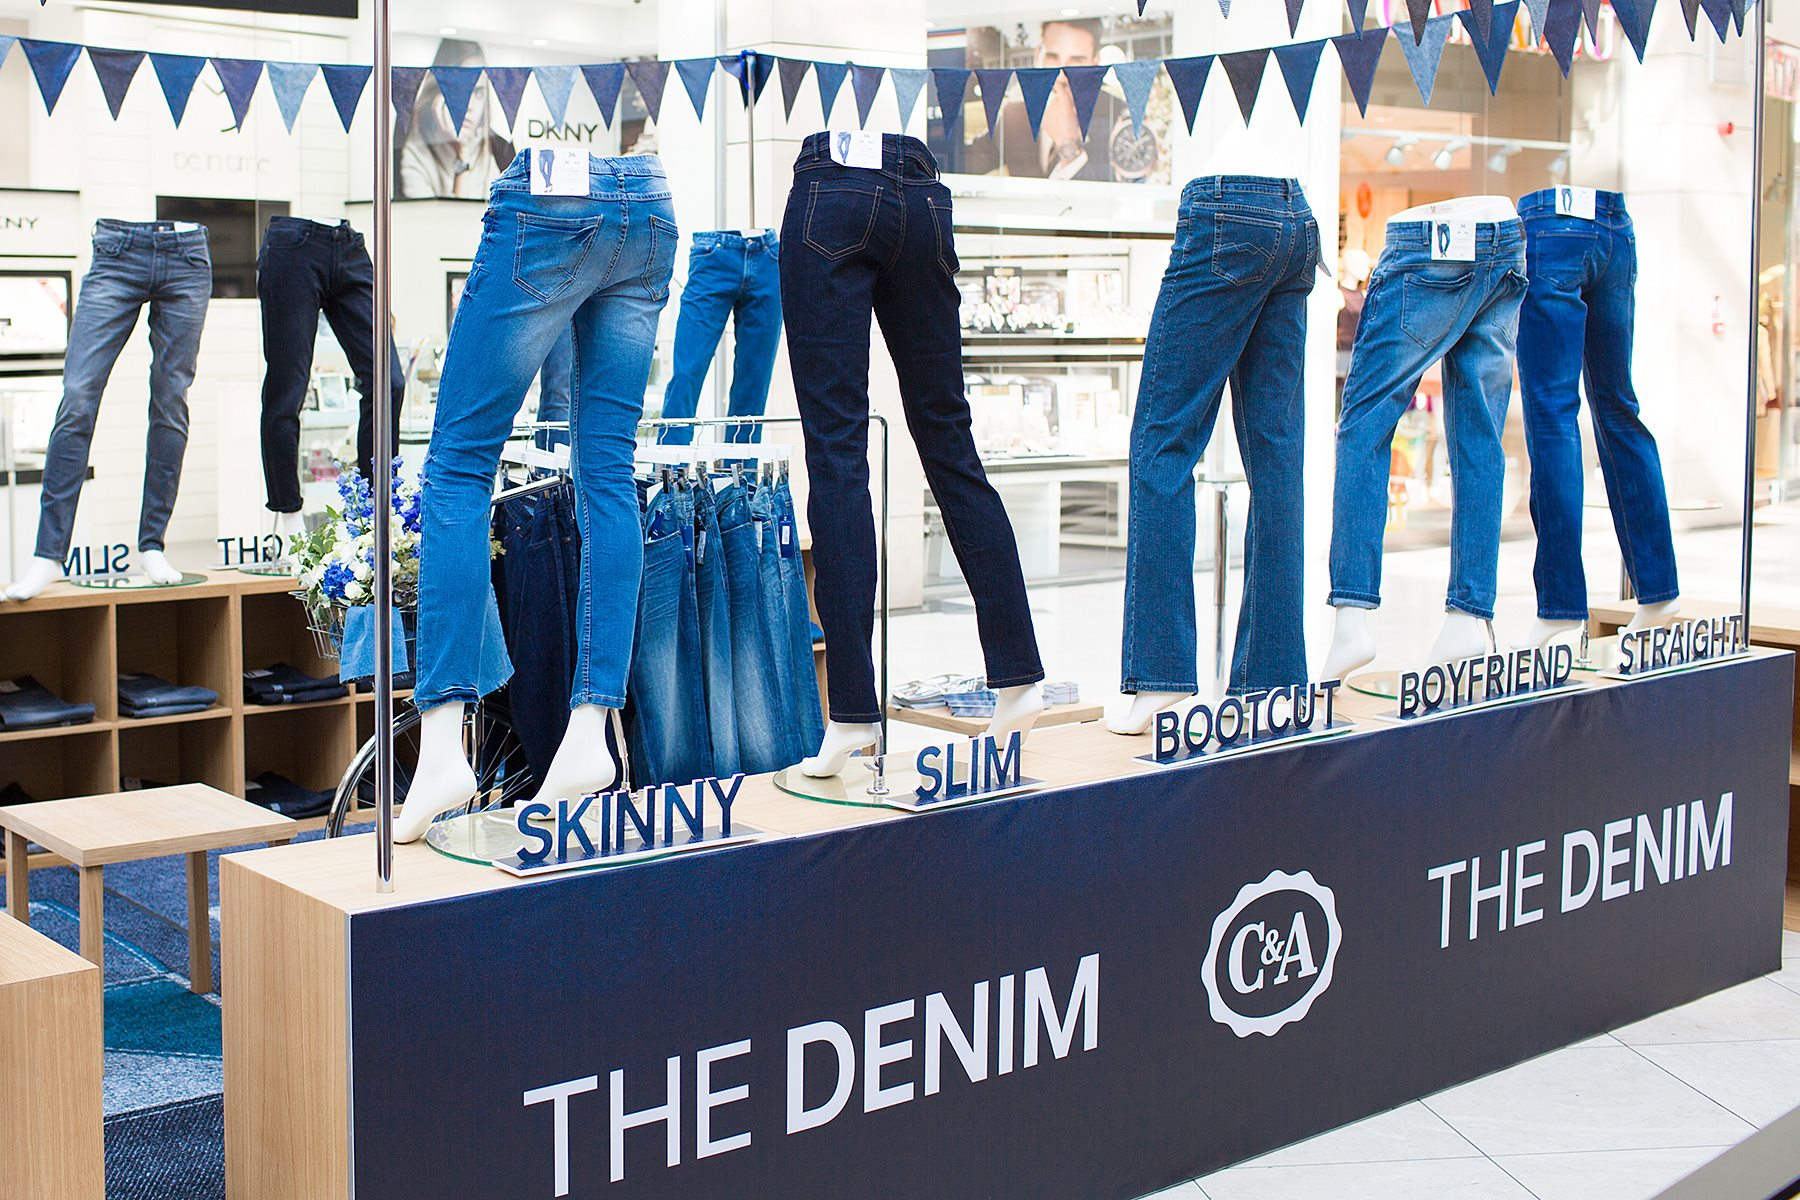 C&A THE DENIM  stand